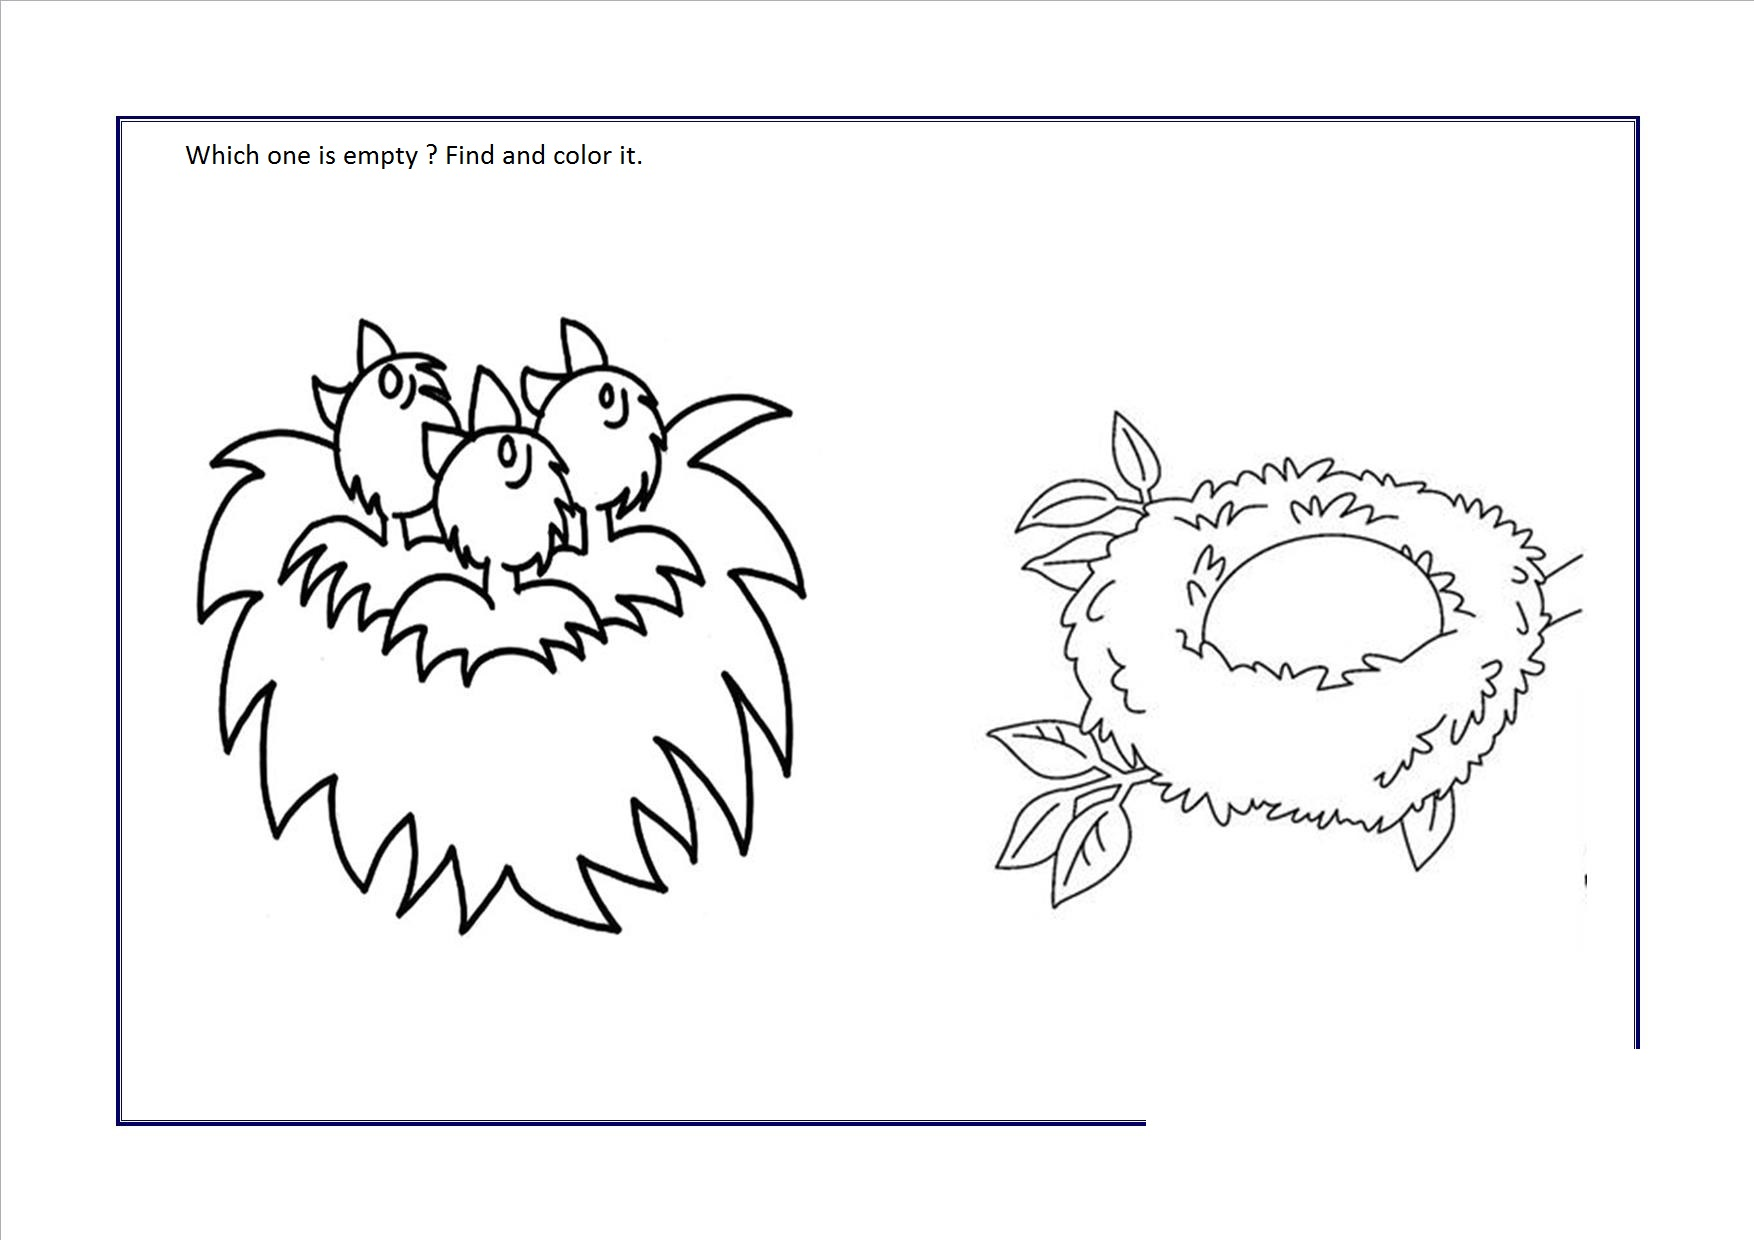 full_or_empty_easy_worksheets 3 in addition number worksheets halloween coloring 1 on number worksheets halloween coloring moreover number worksheets halloween coloring 2 on number worksheets halloween coloring additionally number worksheets halloween coloring 3 on number worksheets halloween coloring besides number worksheets halloween coloring 4 on number worksheets halloween coloring